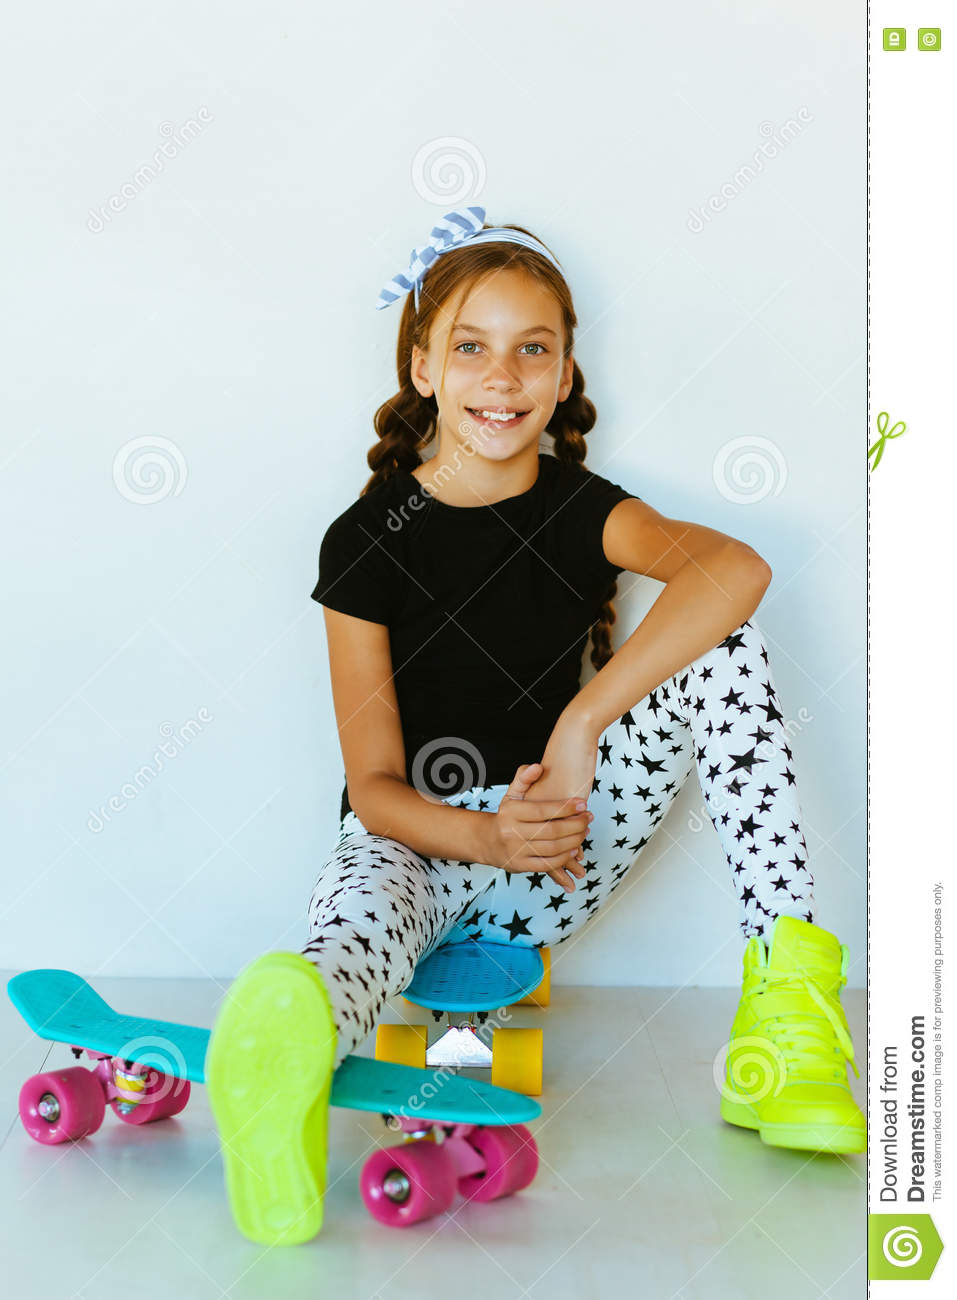 Teenage Skater Stock Image Image Of Clothes Activity 73971351